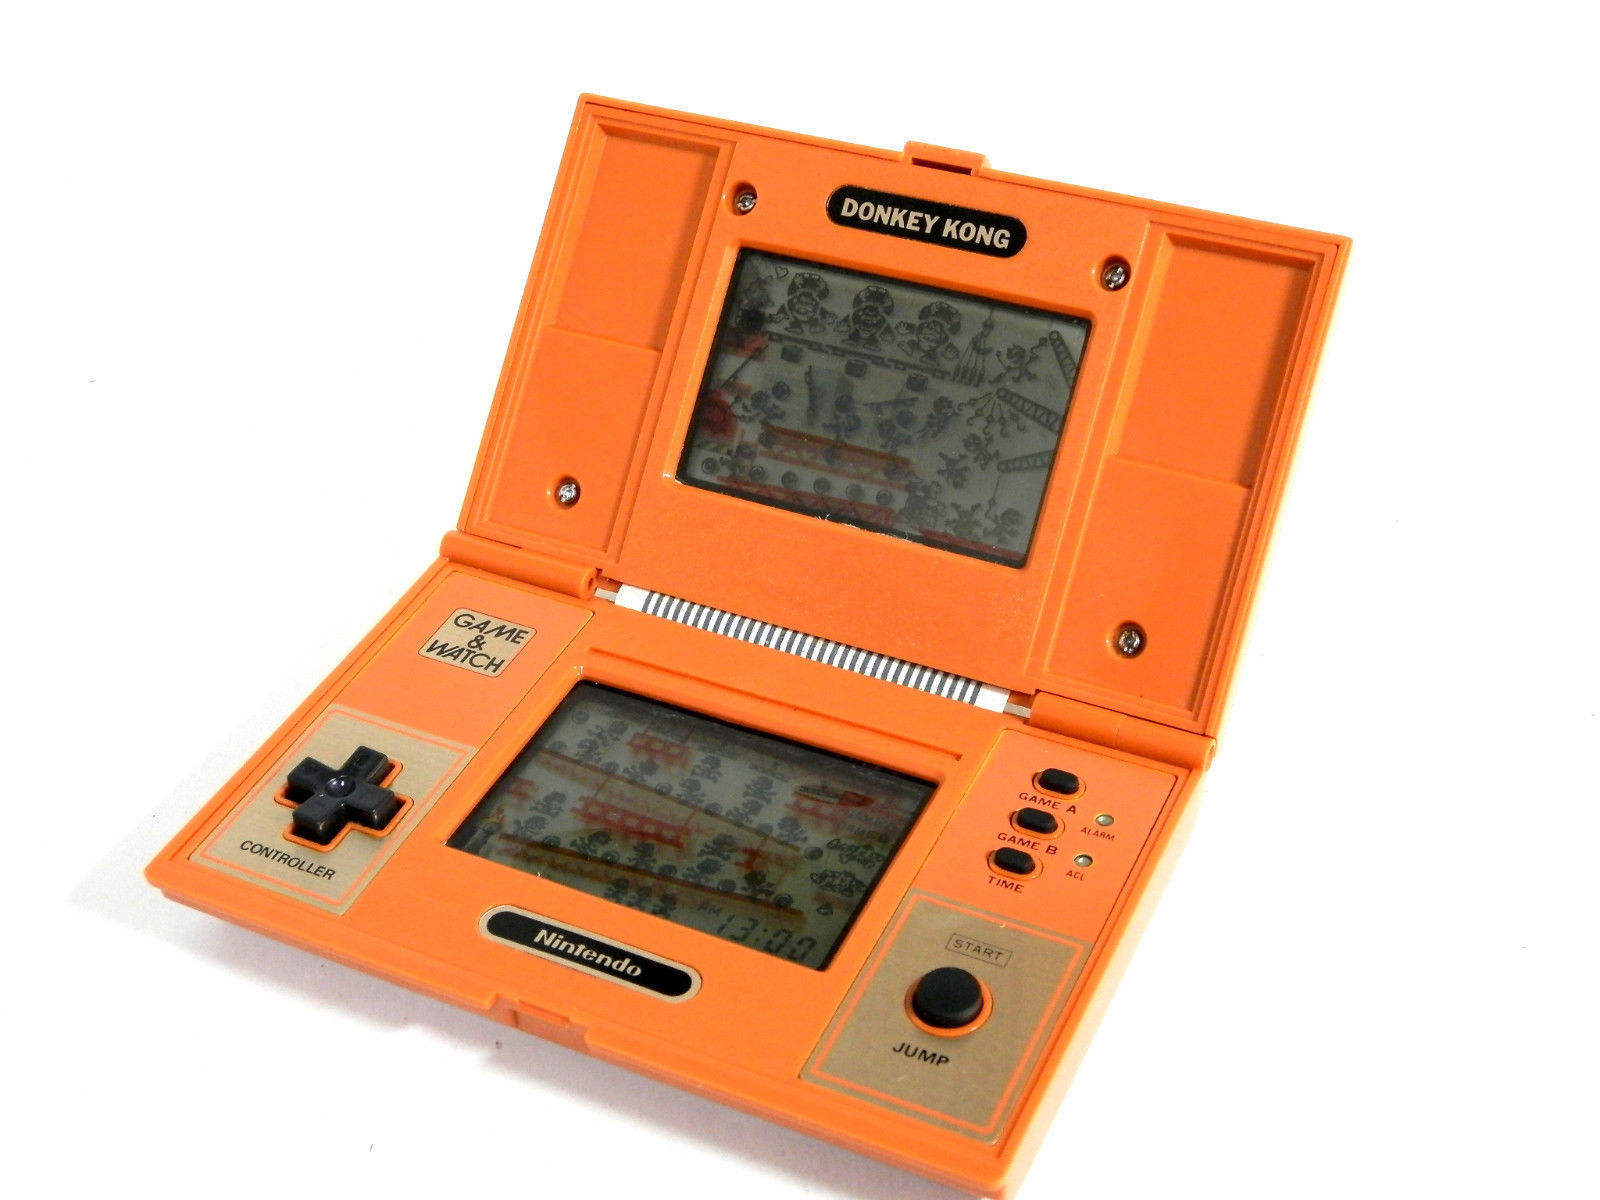 DONKEY KONG NINTENDO GAME WATCH HANDHELD CONSOLE DUAL SCREEN